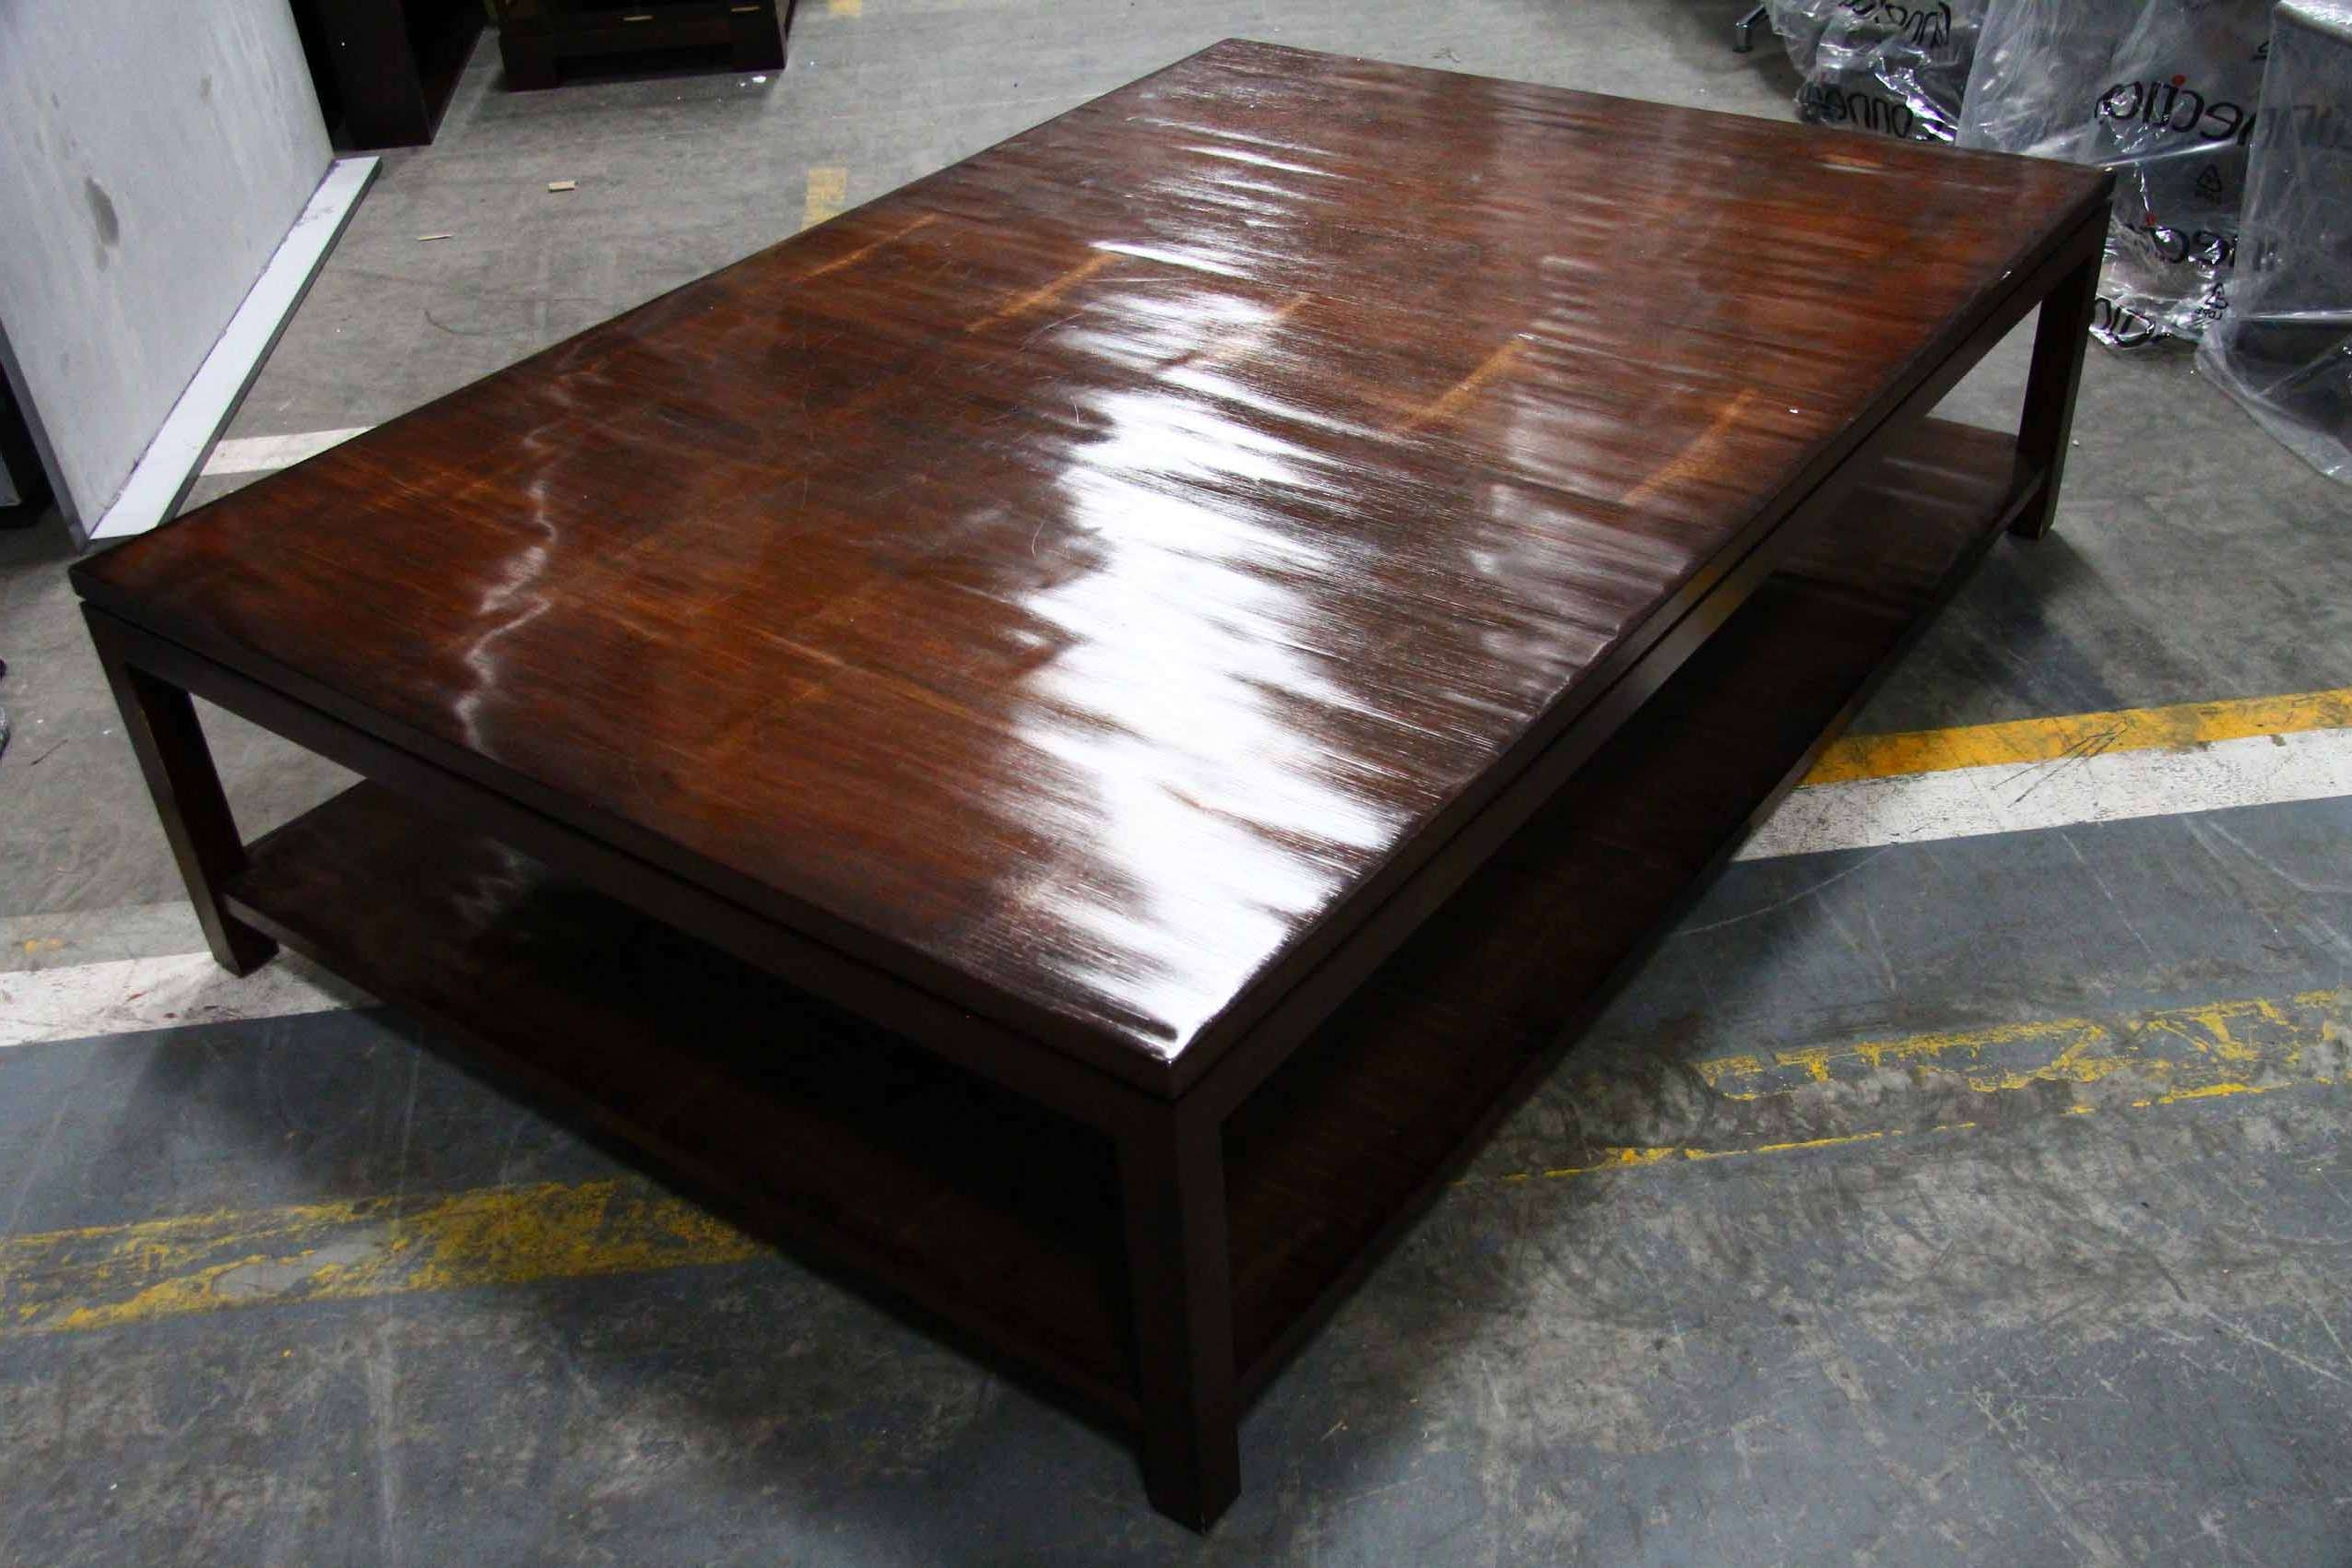 Simple Dark Wood Low Coffee Table Large Coffee Table With Storage Throughout Famous Low Coffee Table With Storage (View 18 of 20)